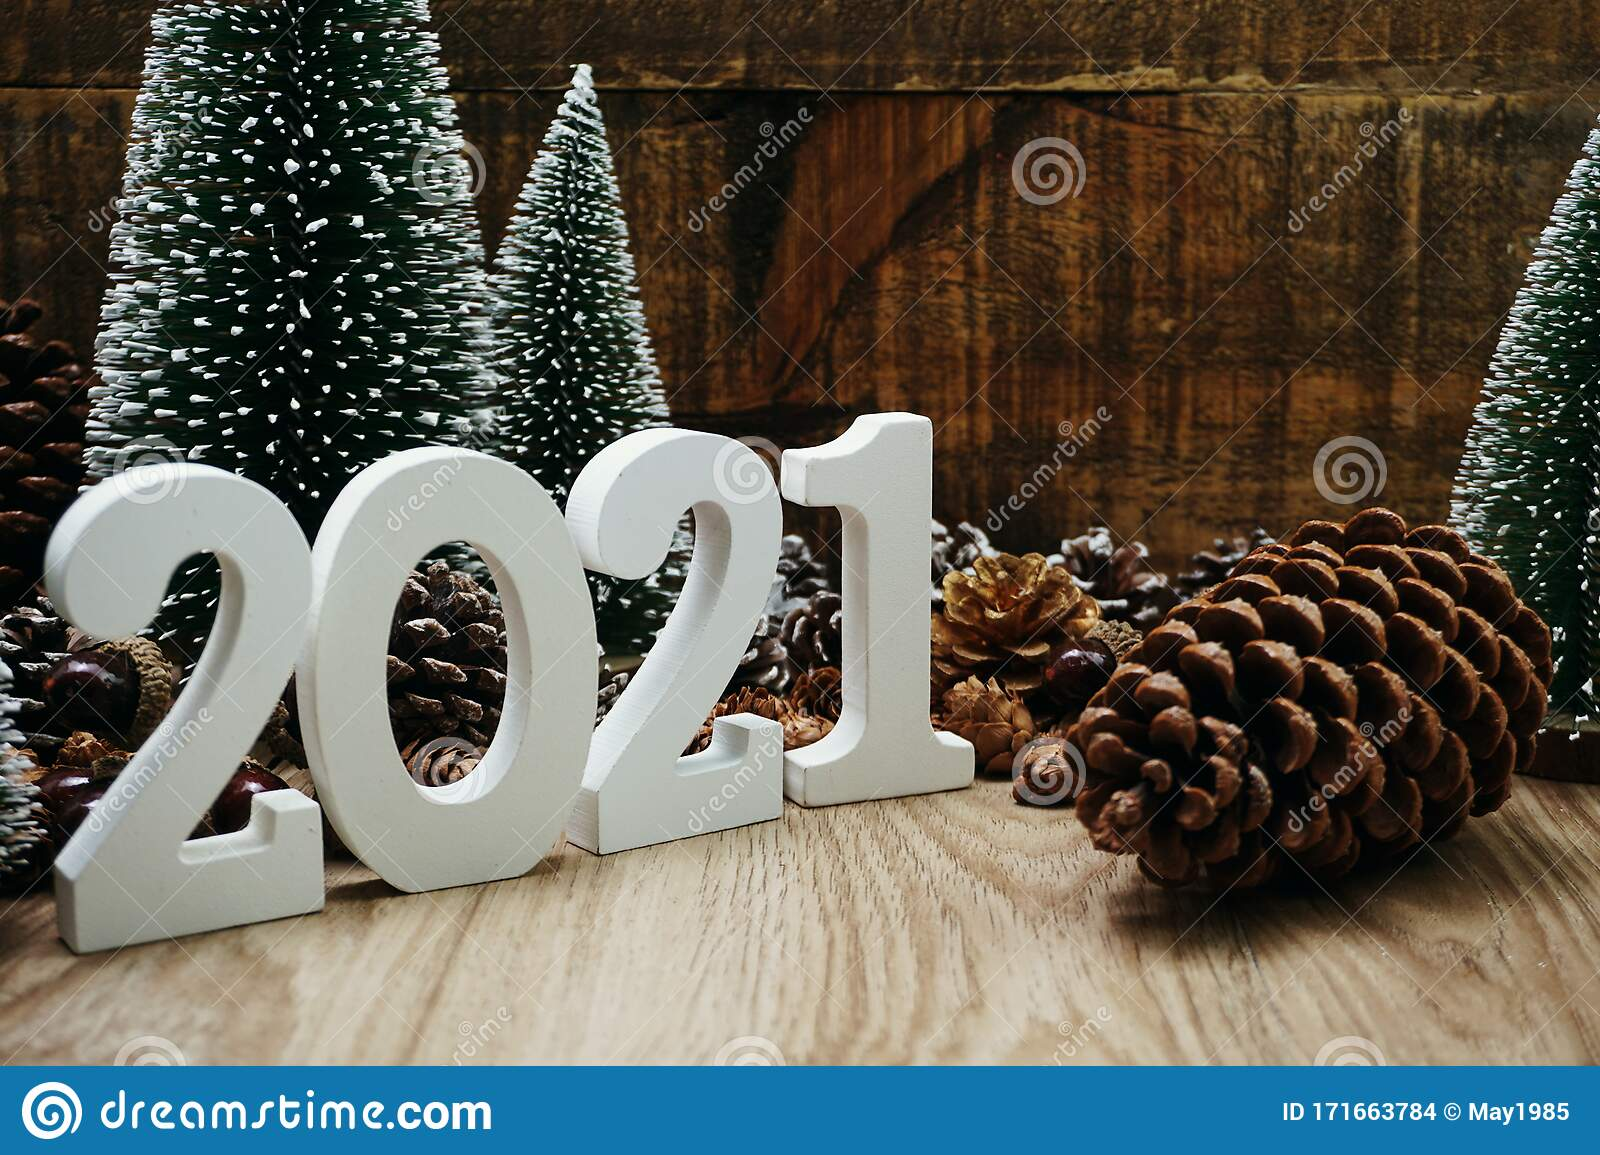 Christmas Tree Recolection 2021 2021 Happy New Year Festive Background With Christmas Tree And Pine Cone Decoration On Wooden Background Stock Photo Image Of Design Decoration 171663784